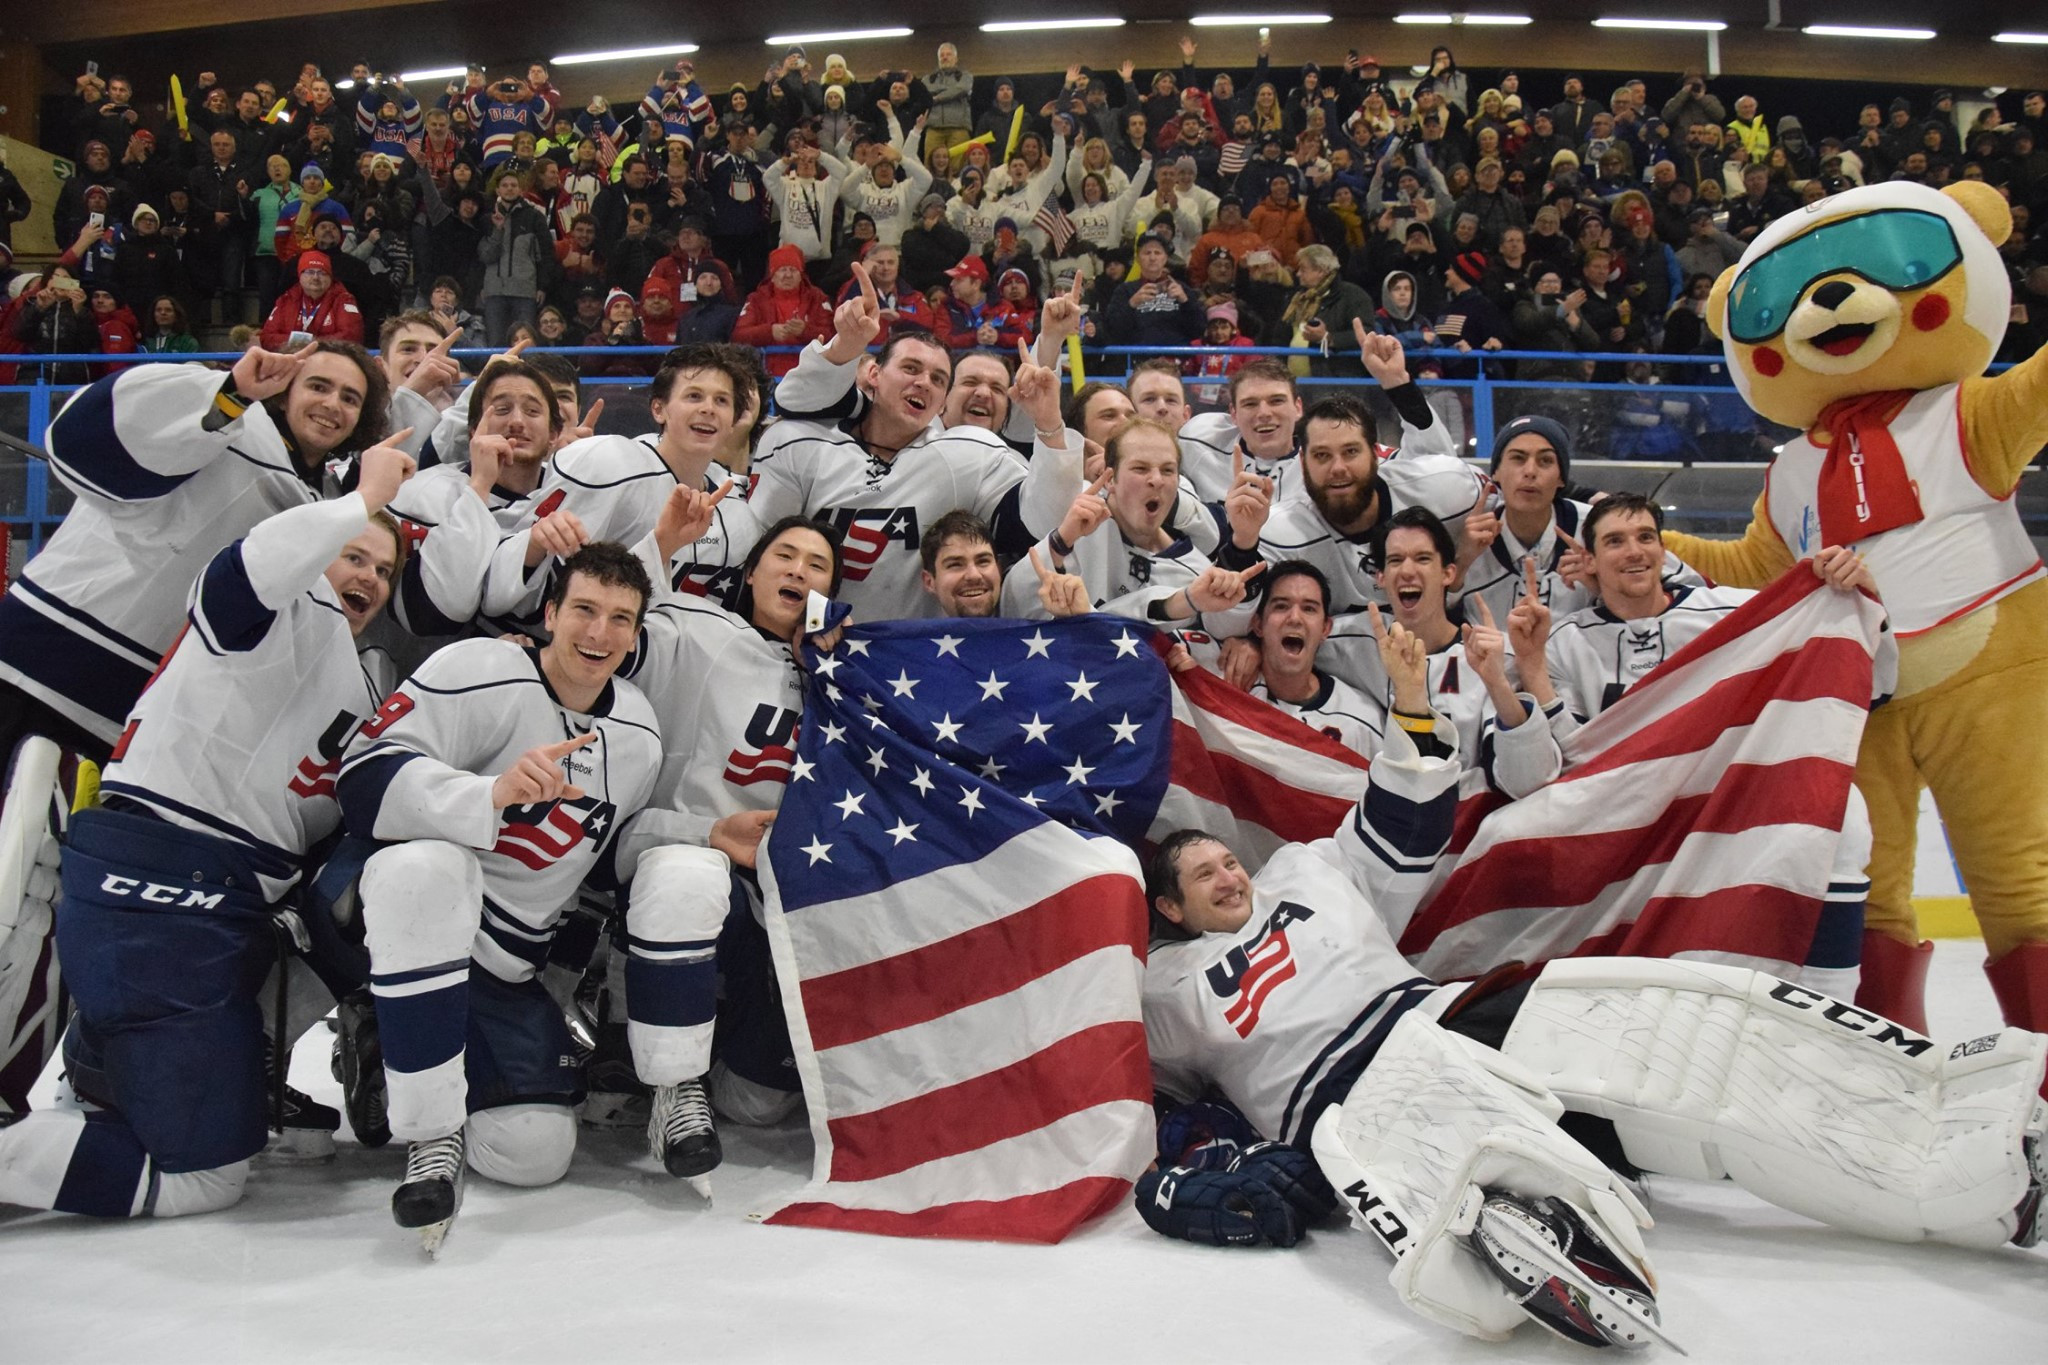 United States win ice hockey gold as Winter Deaflympics conclude